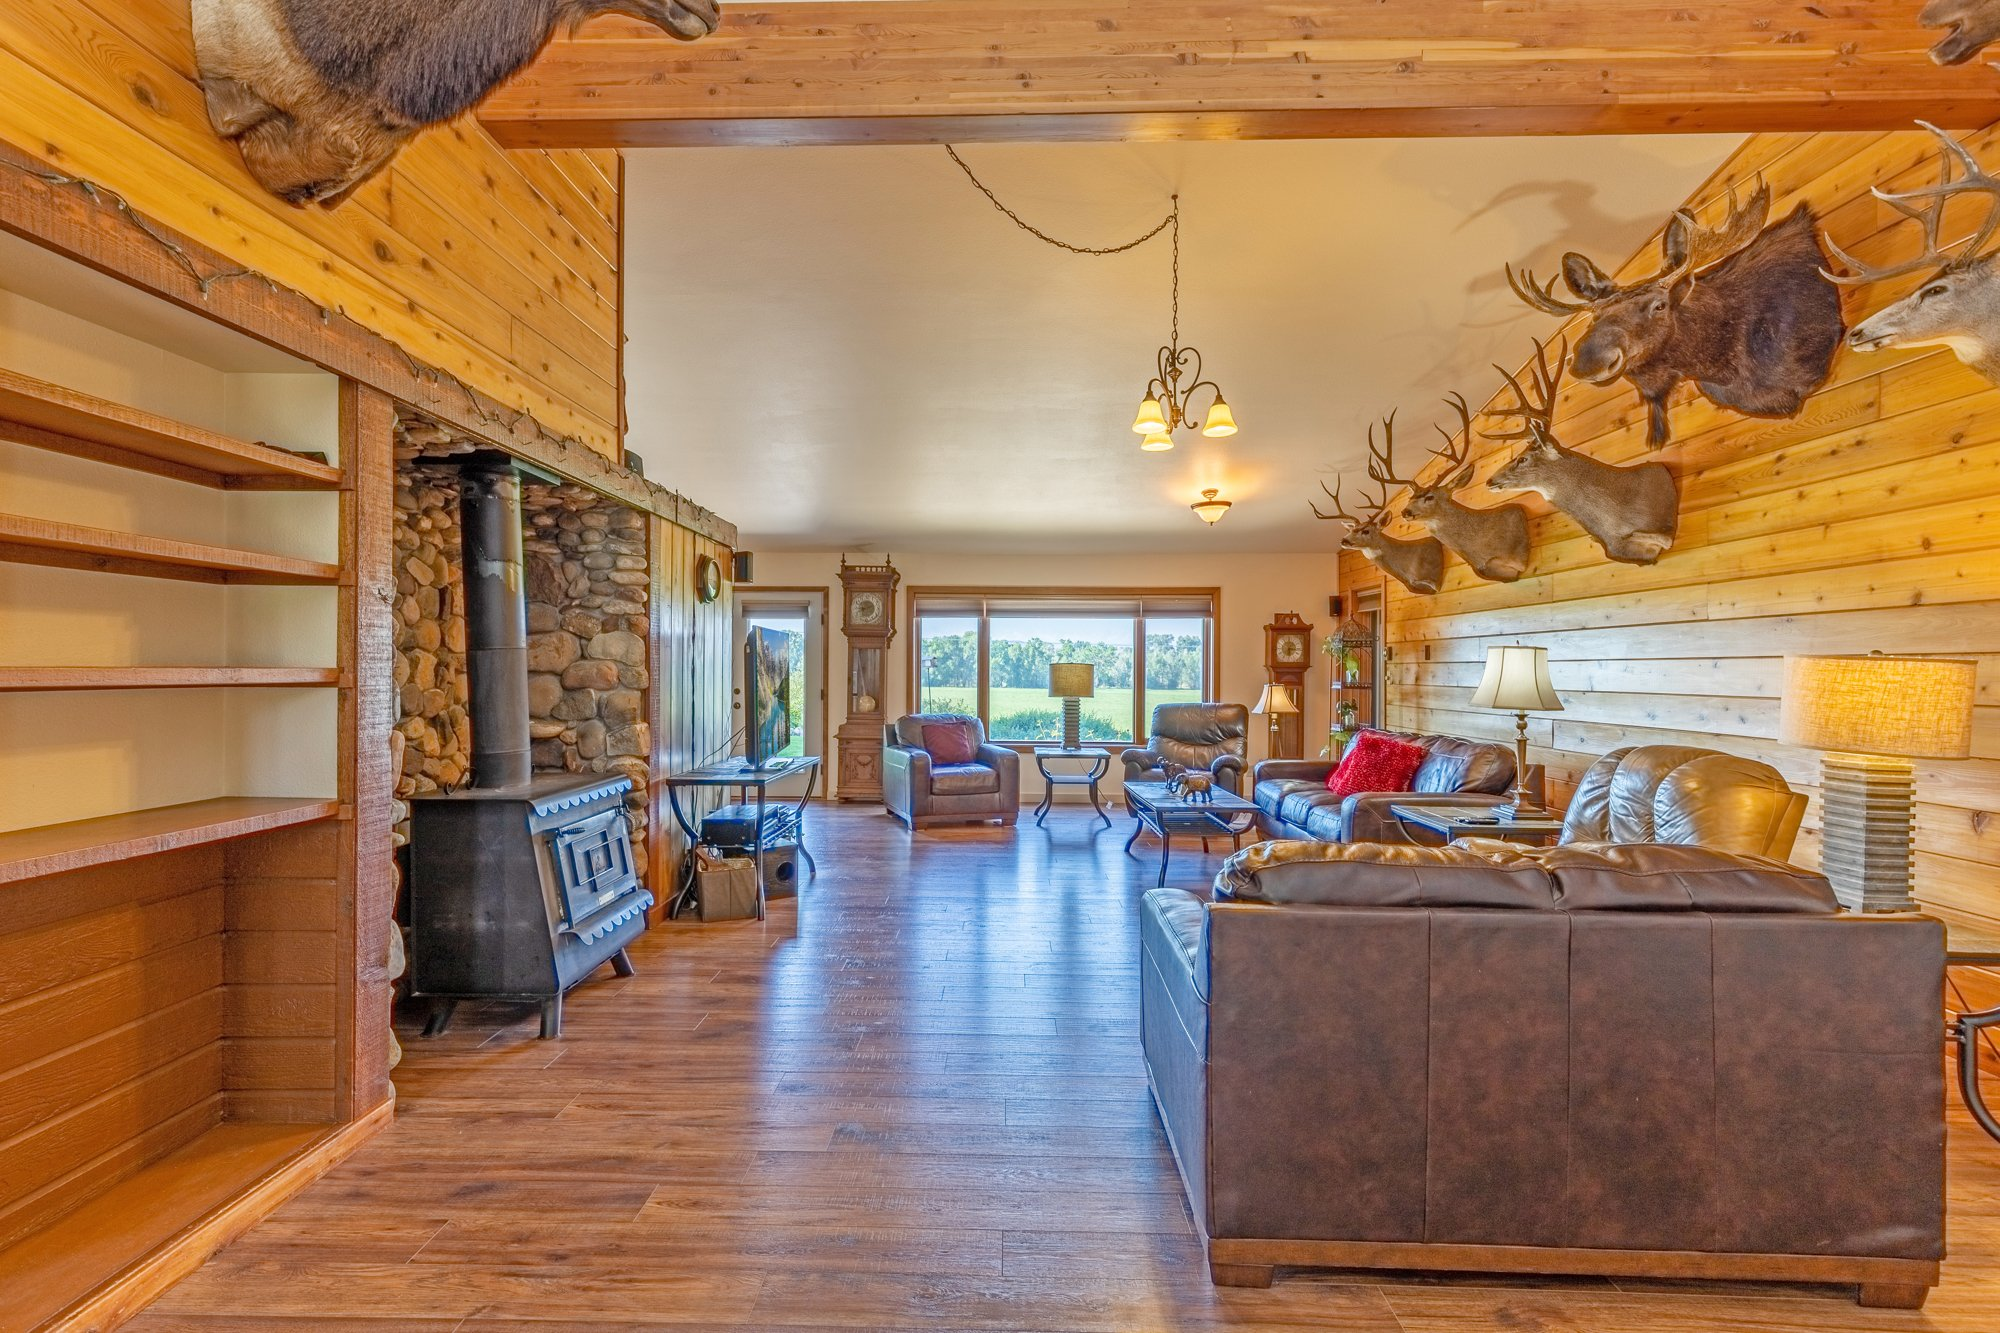 Living Room with Vaulted Ceiling - 17777 6650 Rd Montrose, CO 81403 - Atha Team Country Real Estate